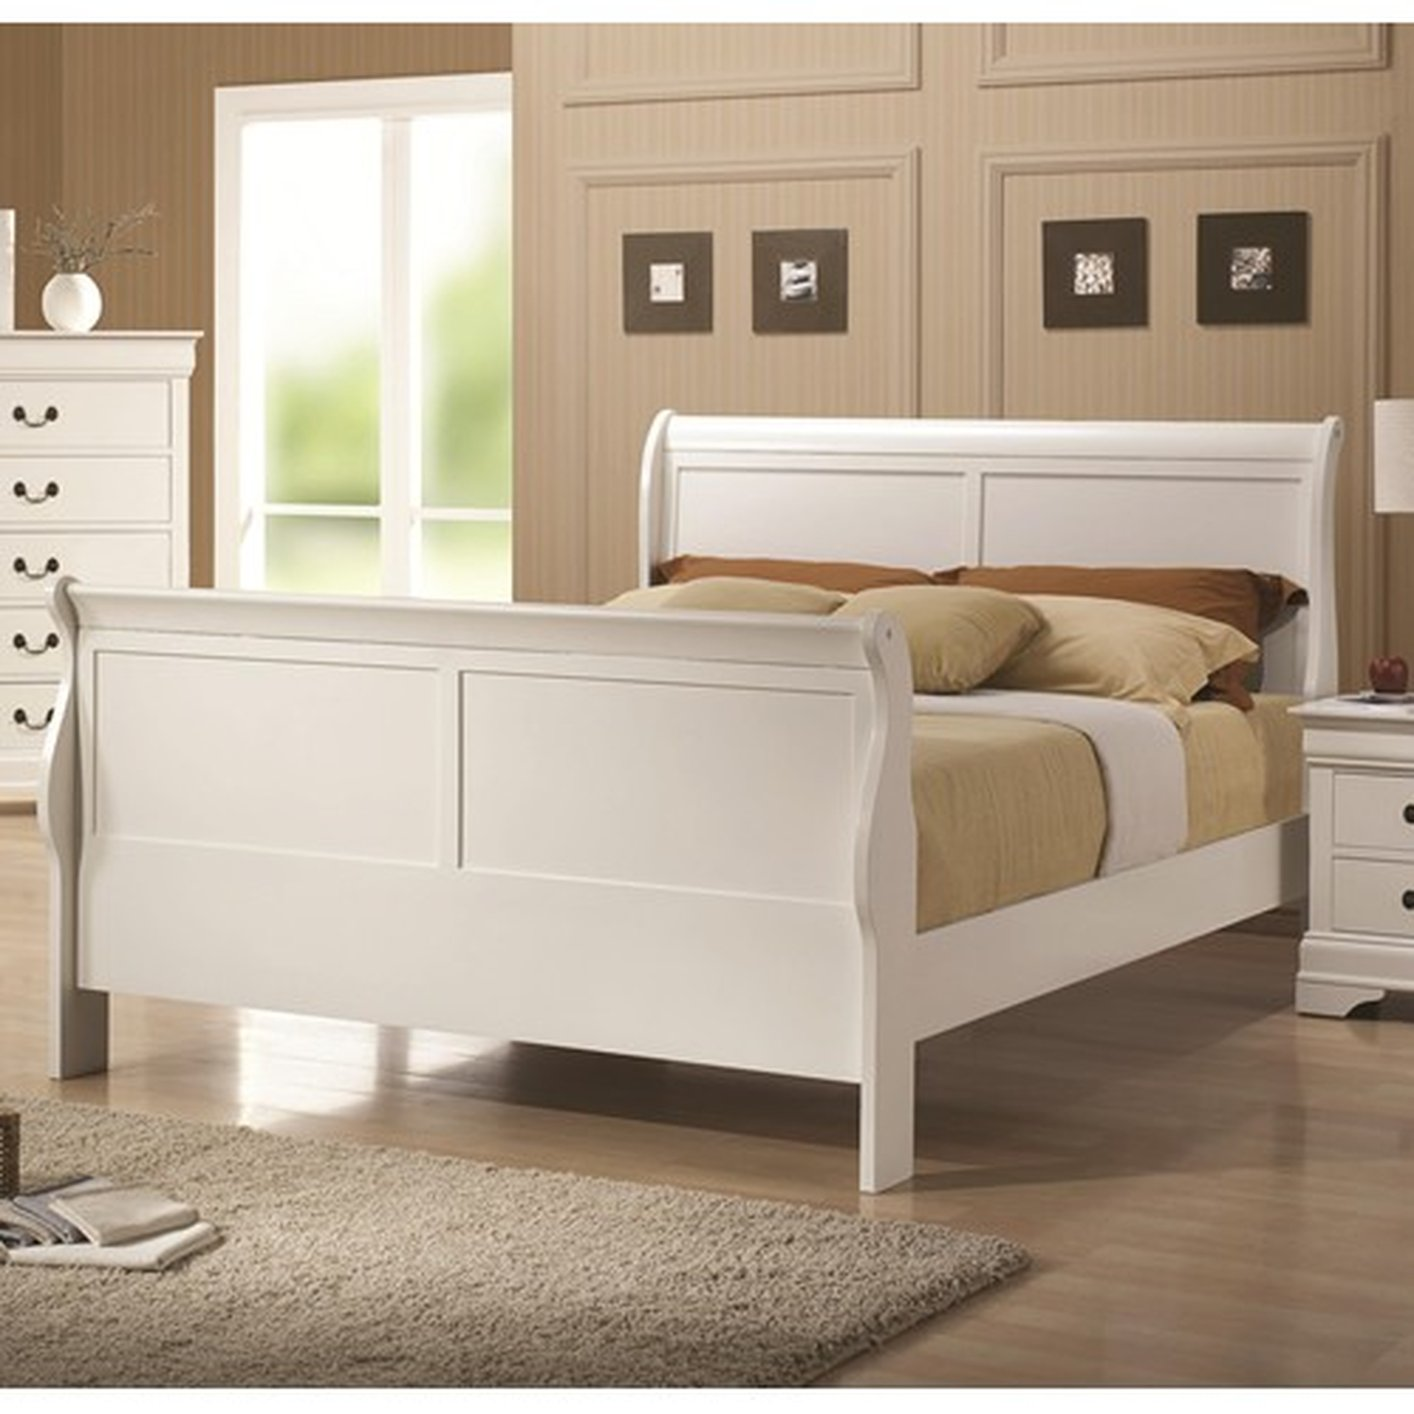 white wood full size bed - Queen White Bed Frame